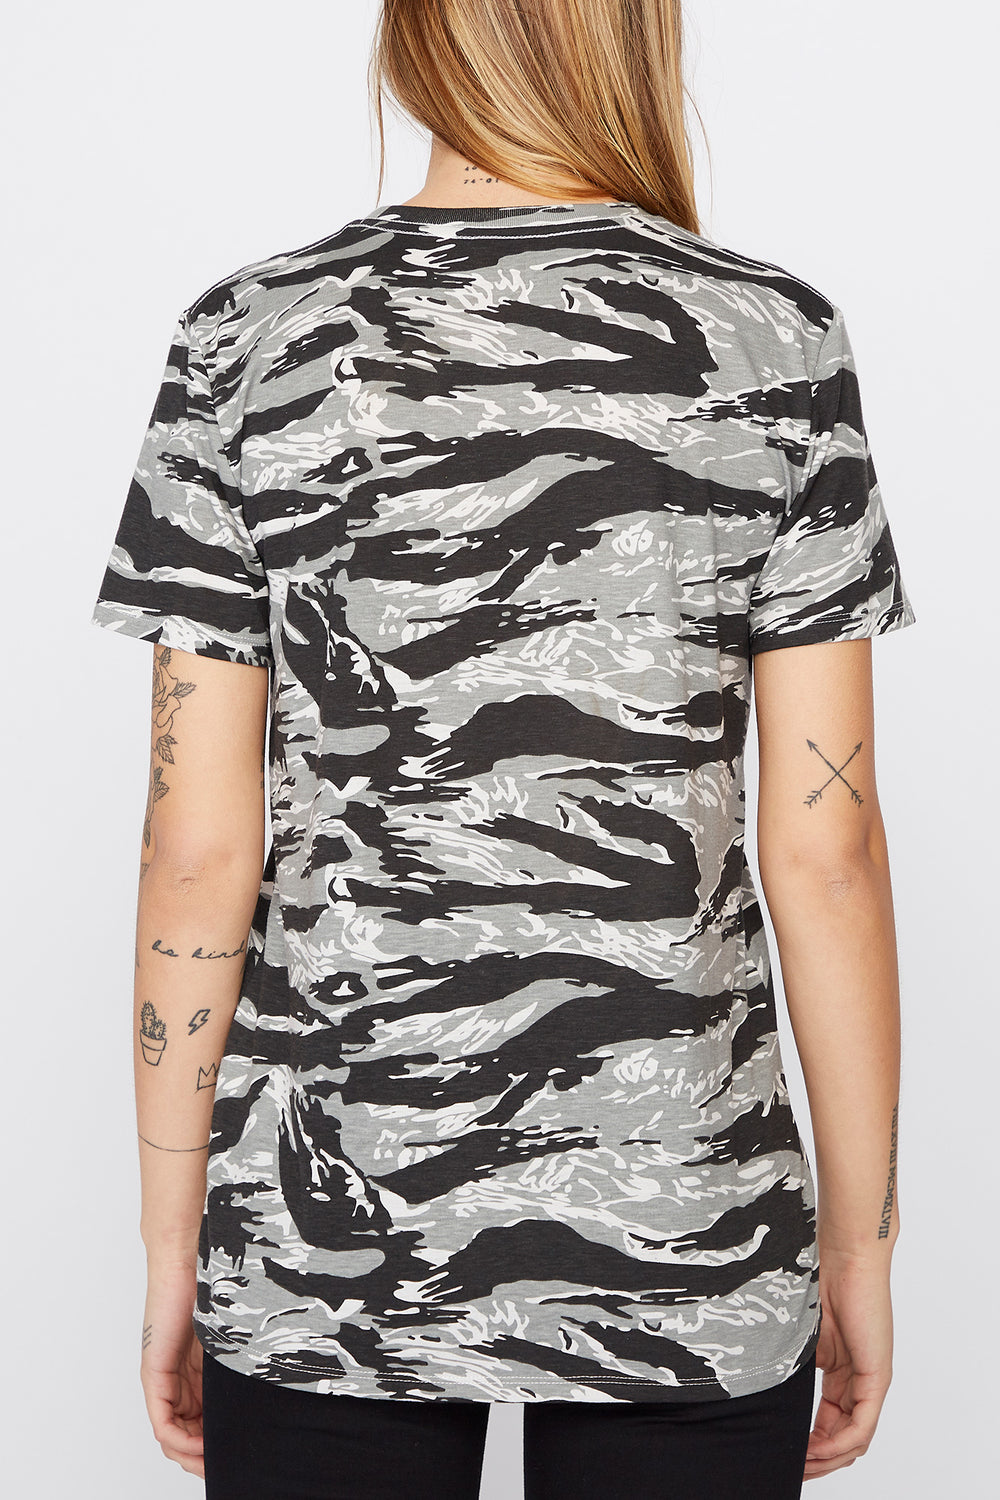 Young & Reckless Womens Camo & Neon T-Shirt Black with White